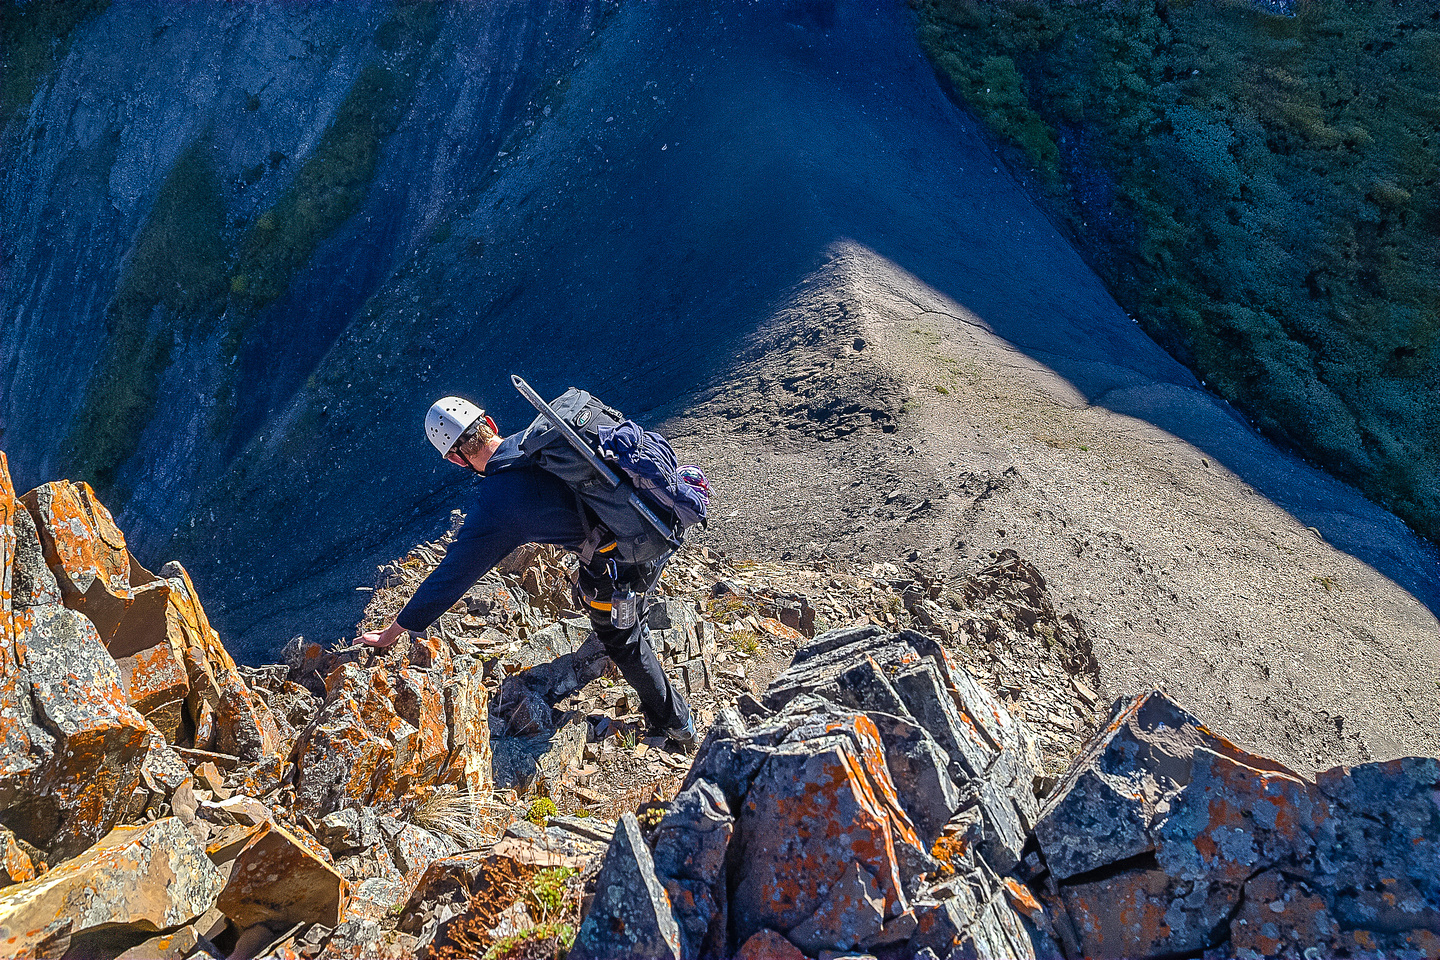 JW down climbs the nose of the dirt / dinner plate pinnacle that abuts the NW ridge of Fisher directly ahead of us here.